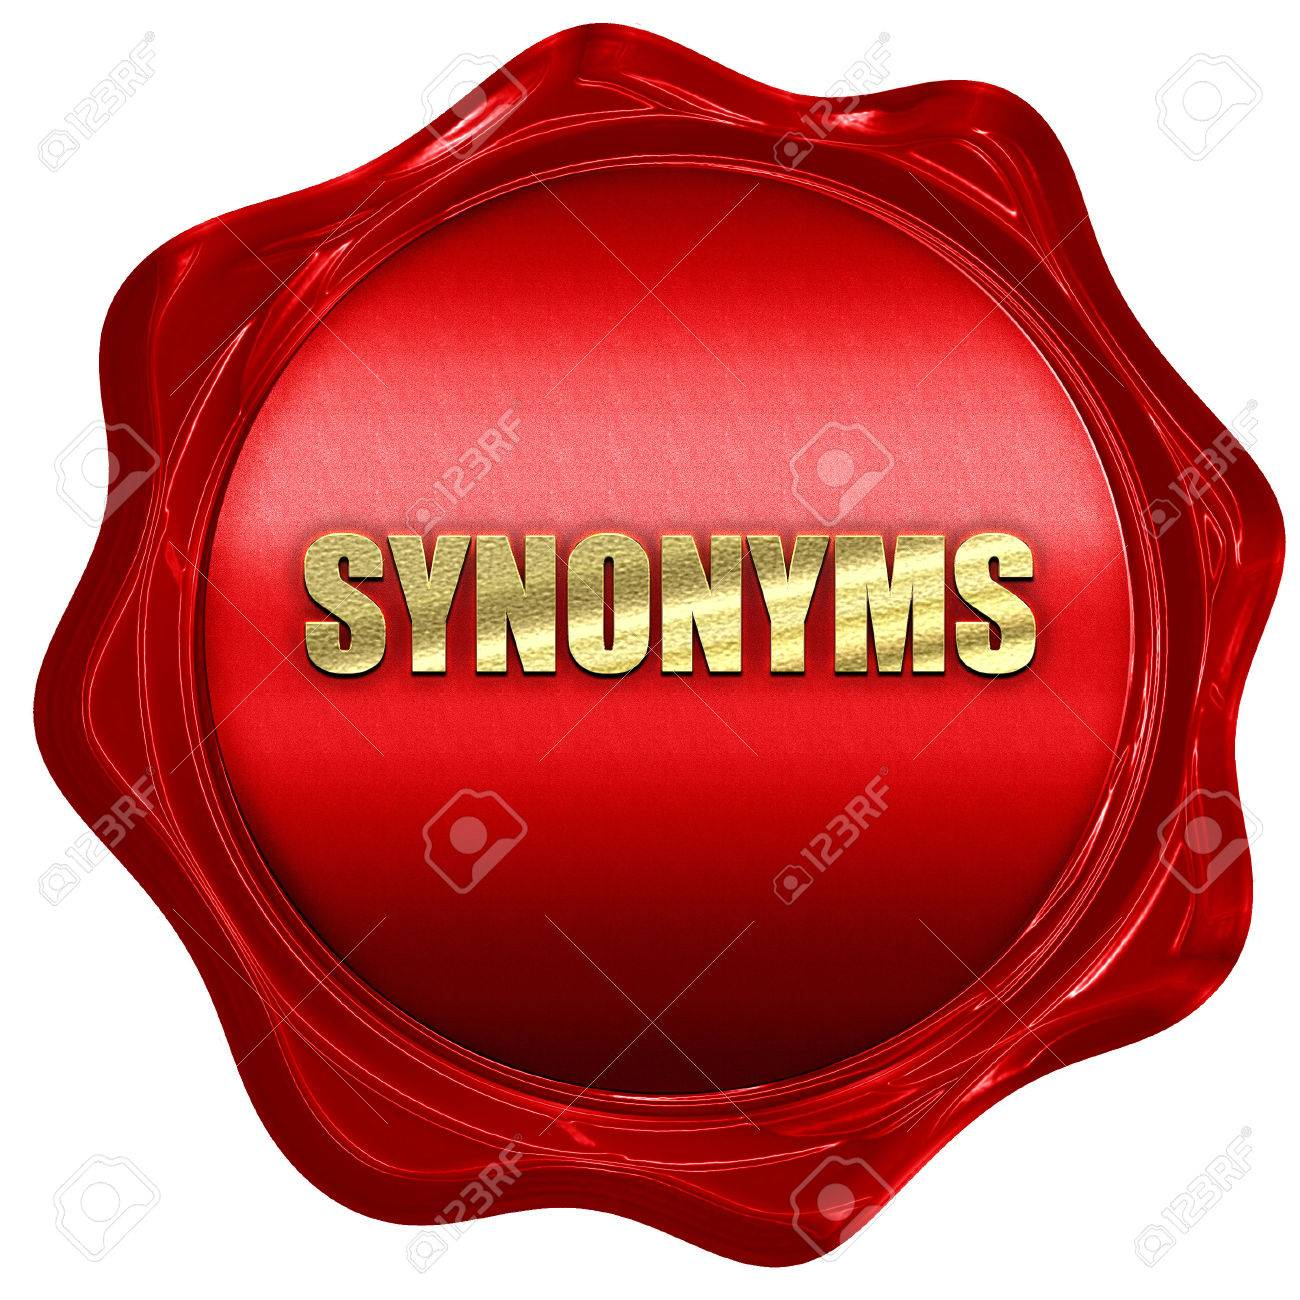 Synonyms 3D Rendering Red Wax Stamp With Text Stock Photo Picture